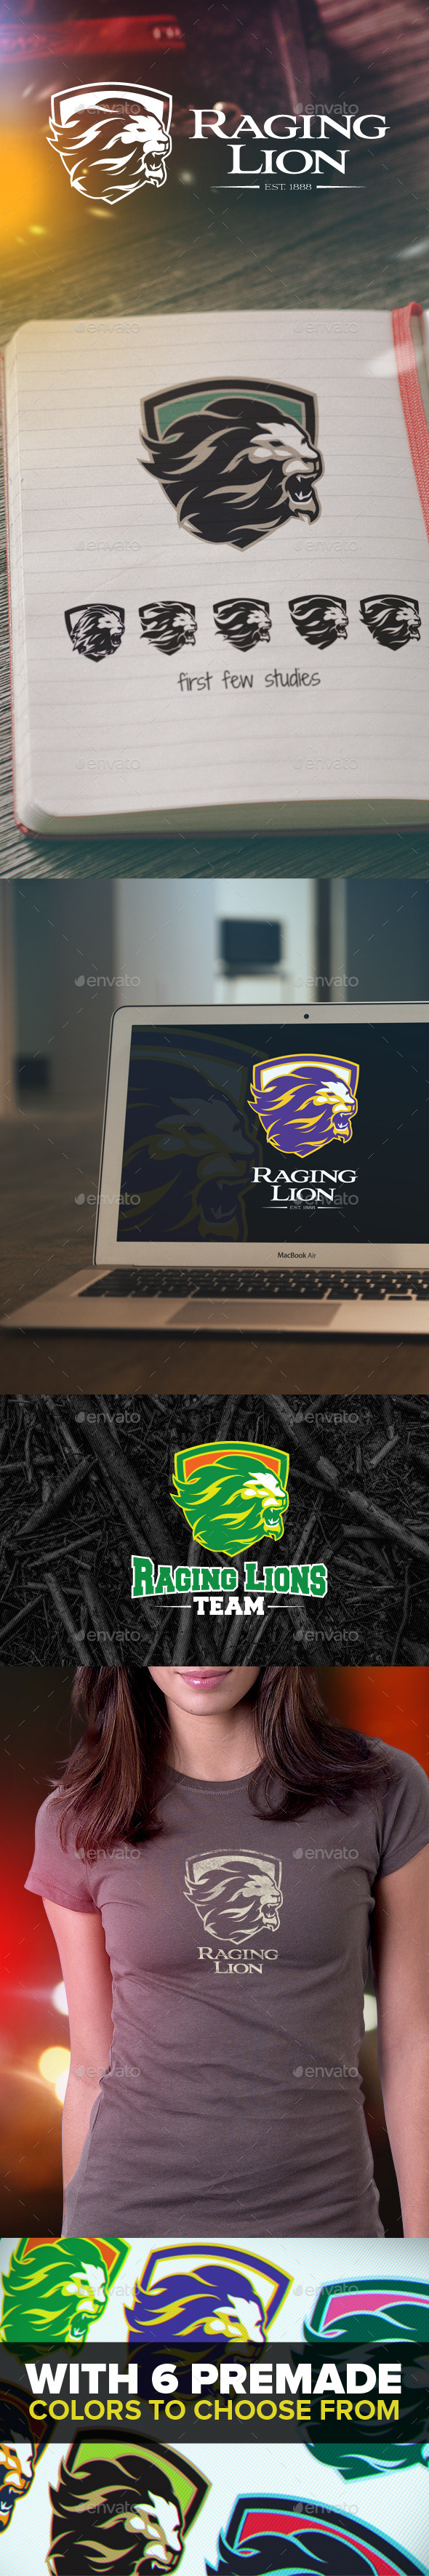 Raging Lion Logo - Animals Logo Templates